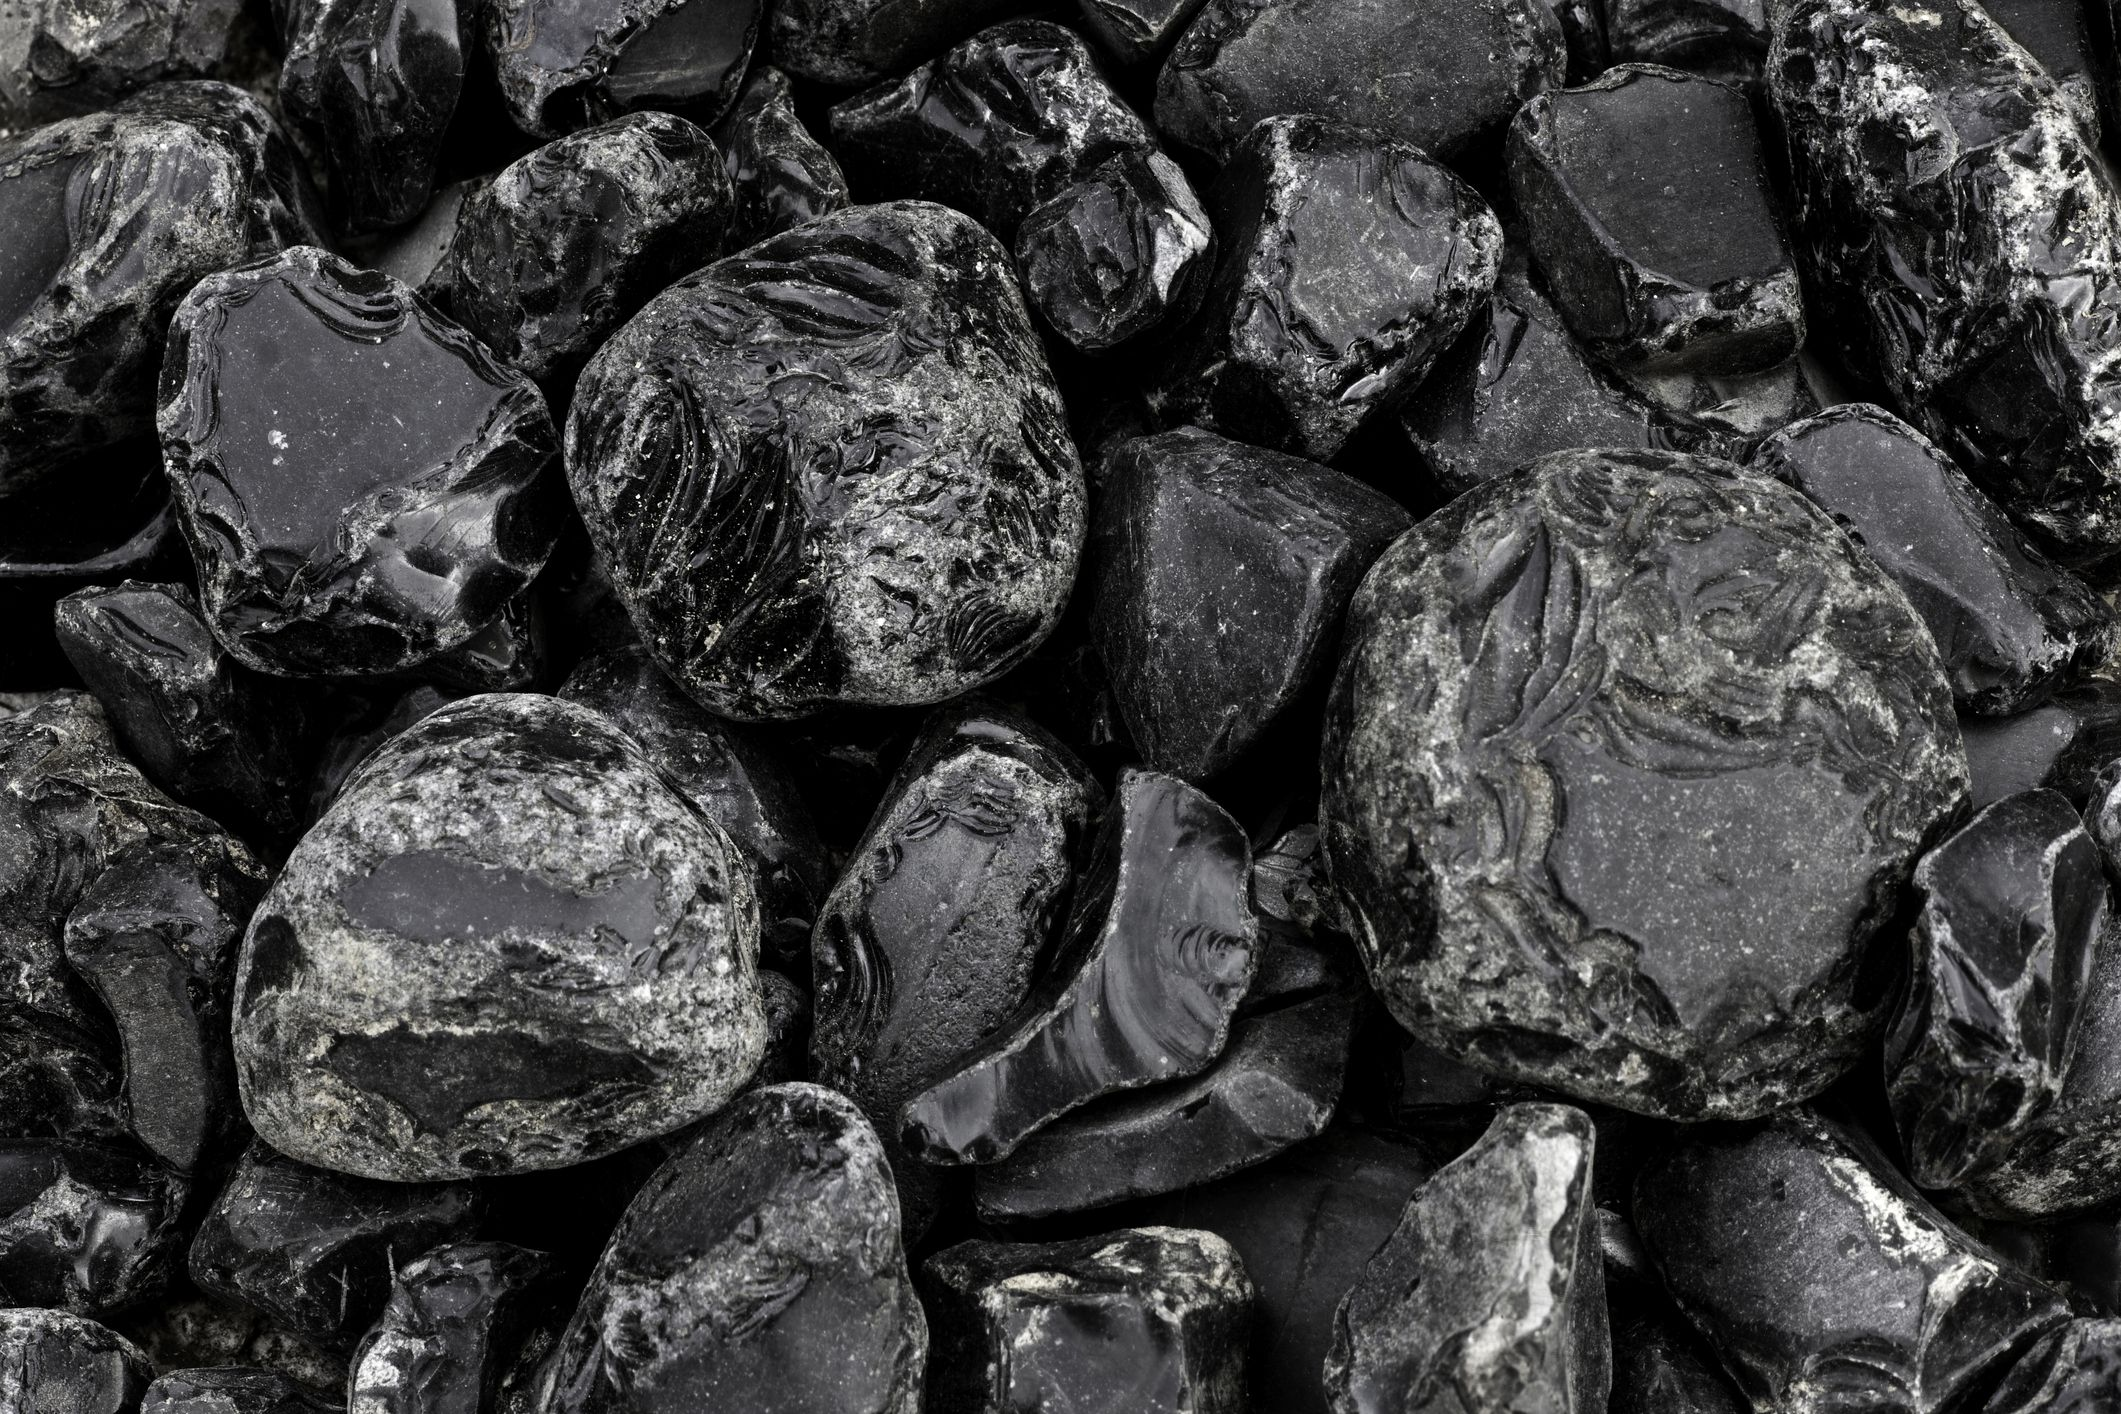 Black Obsidian Use In Healing And Feng Shui